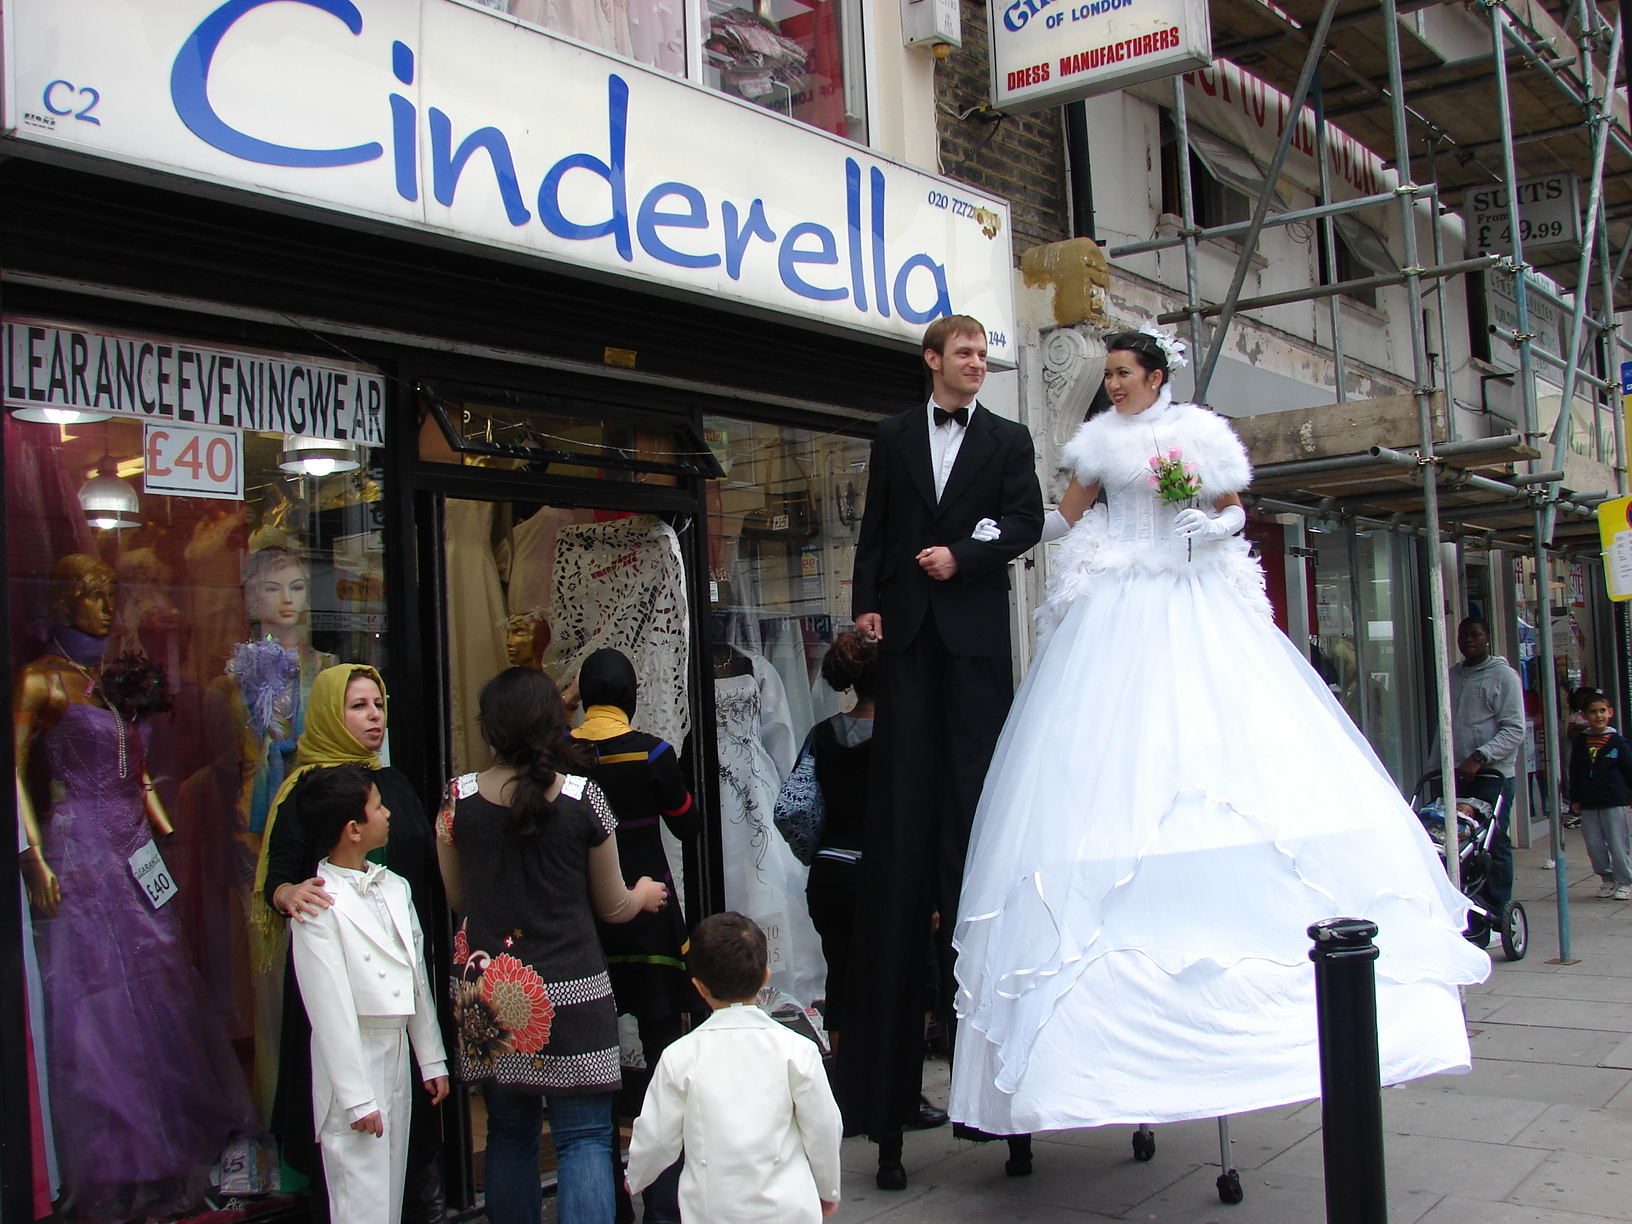 Stiltwalkers - Bride & Groom